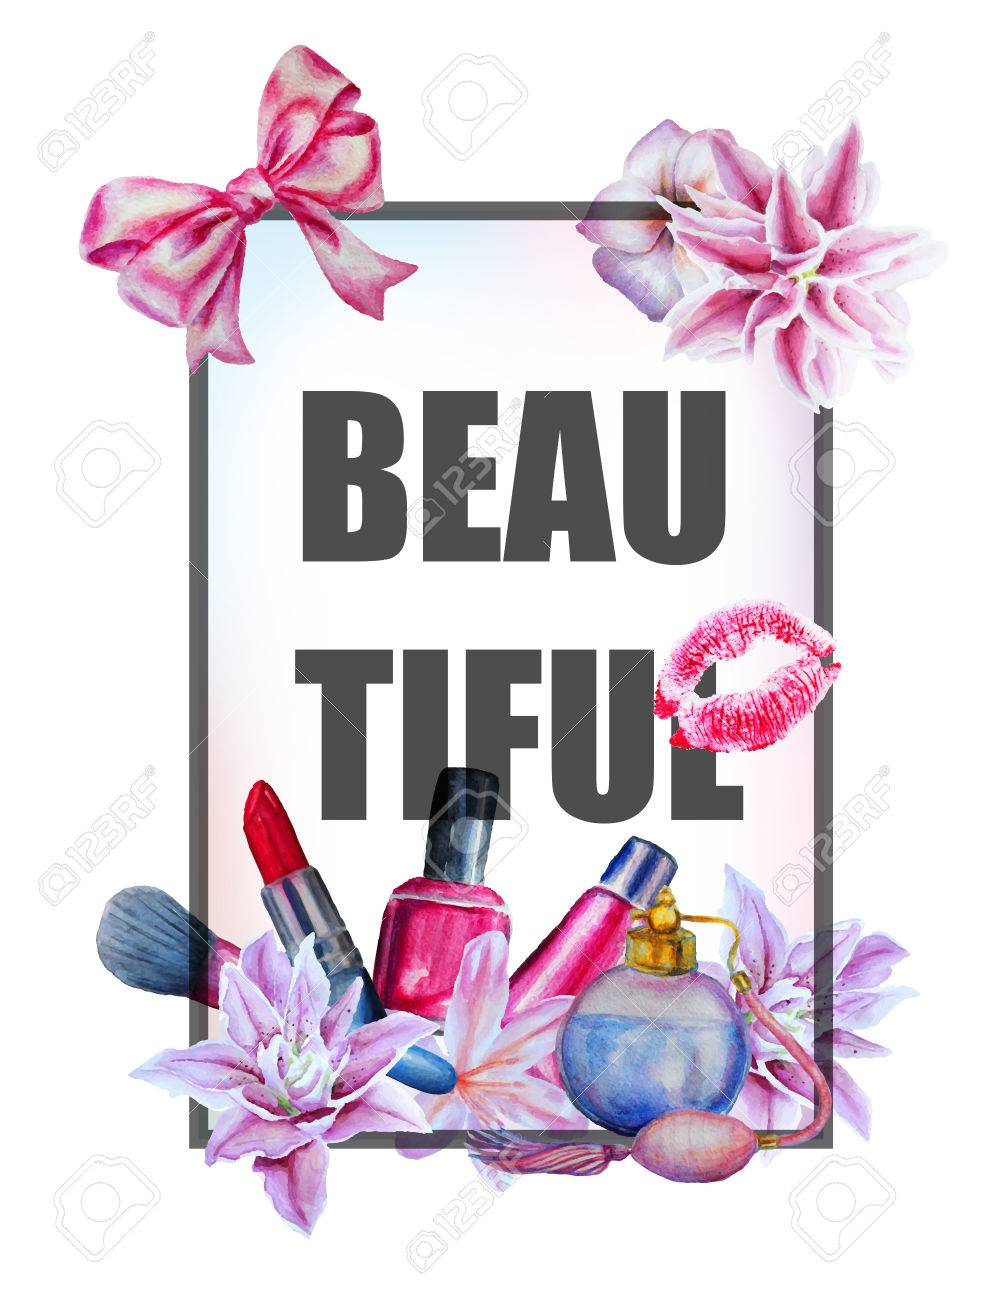 Watercolor hand drawn flowers and cosmetics print background and slogan. - 46183734